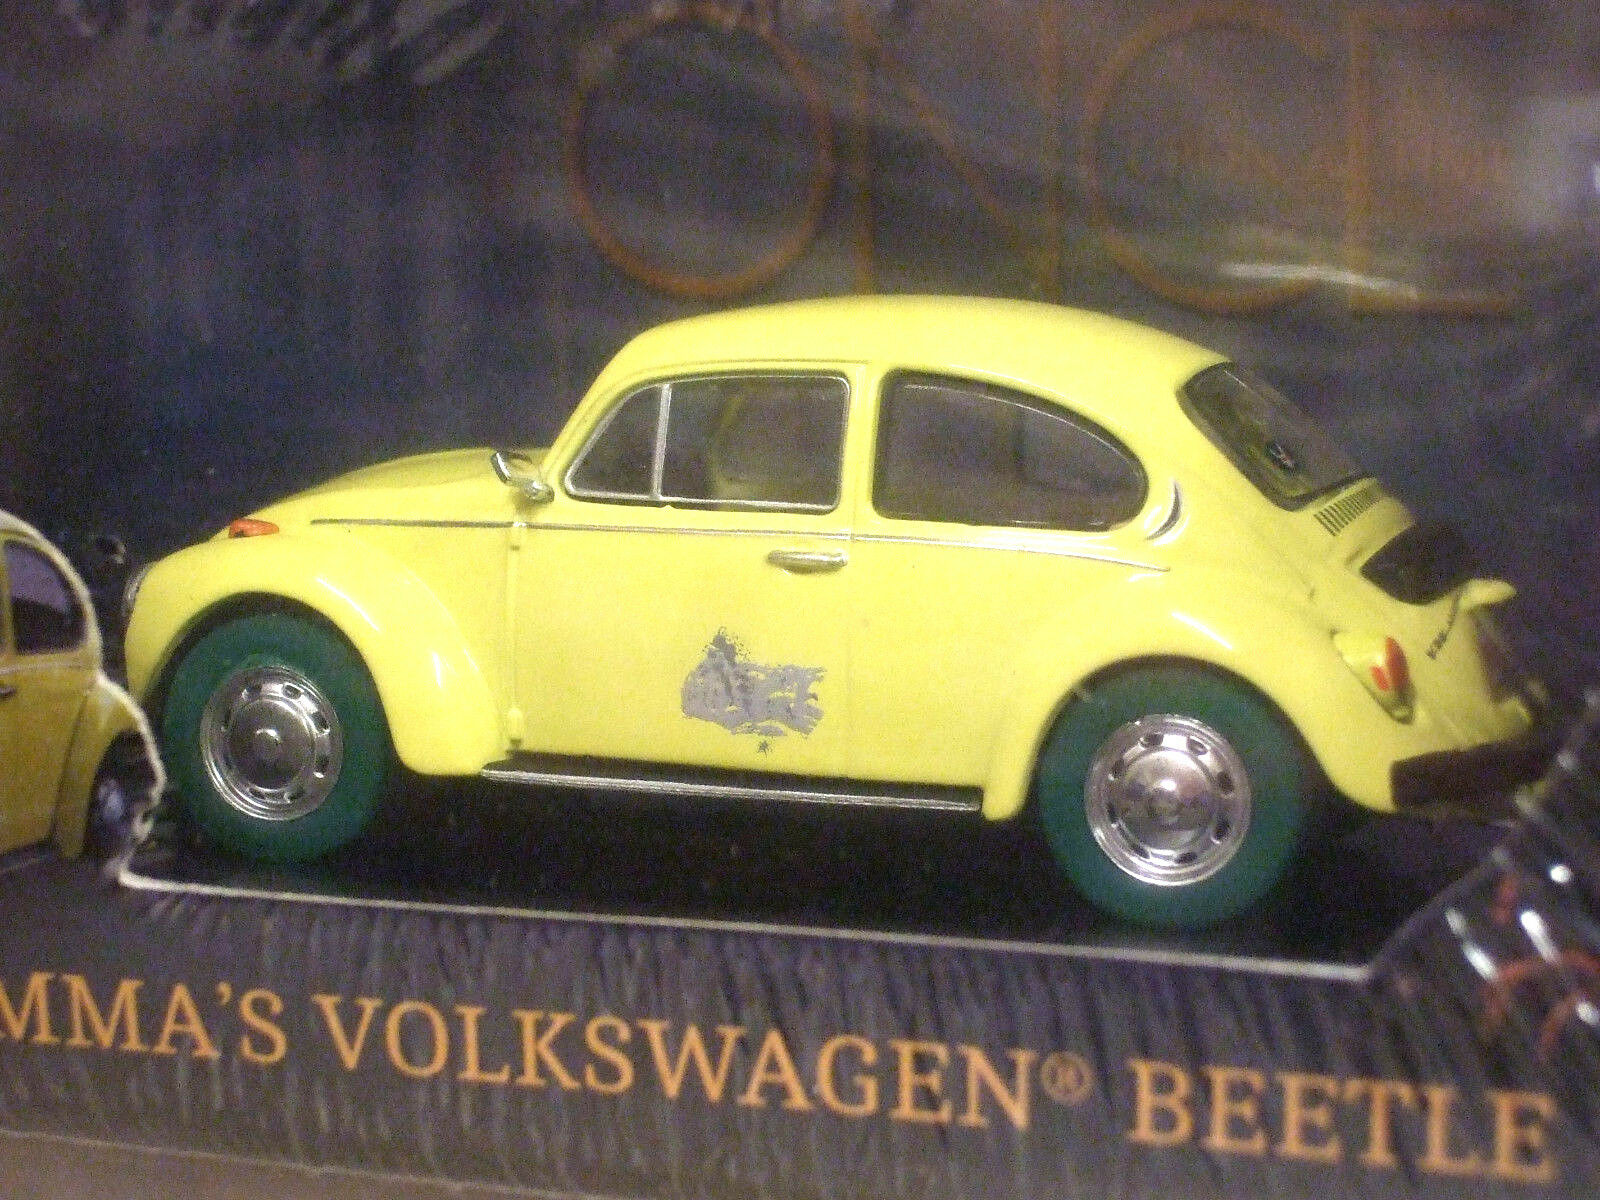 GREENLIGHT 1 43 EMMA SWANS VW BEETLE ONCE UPON A TIME RARE CHASE CAR GREEN TYRES